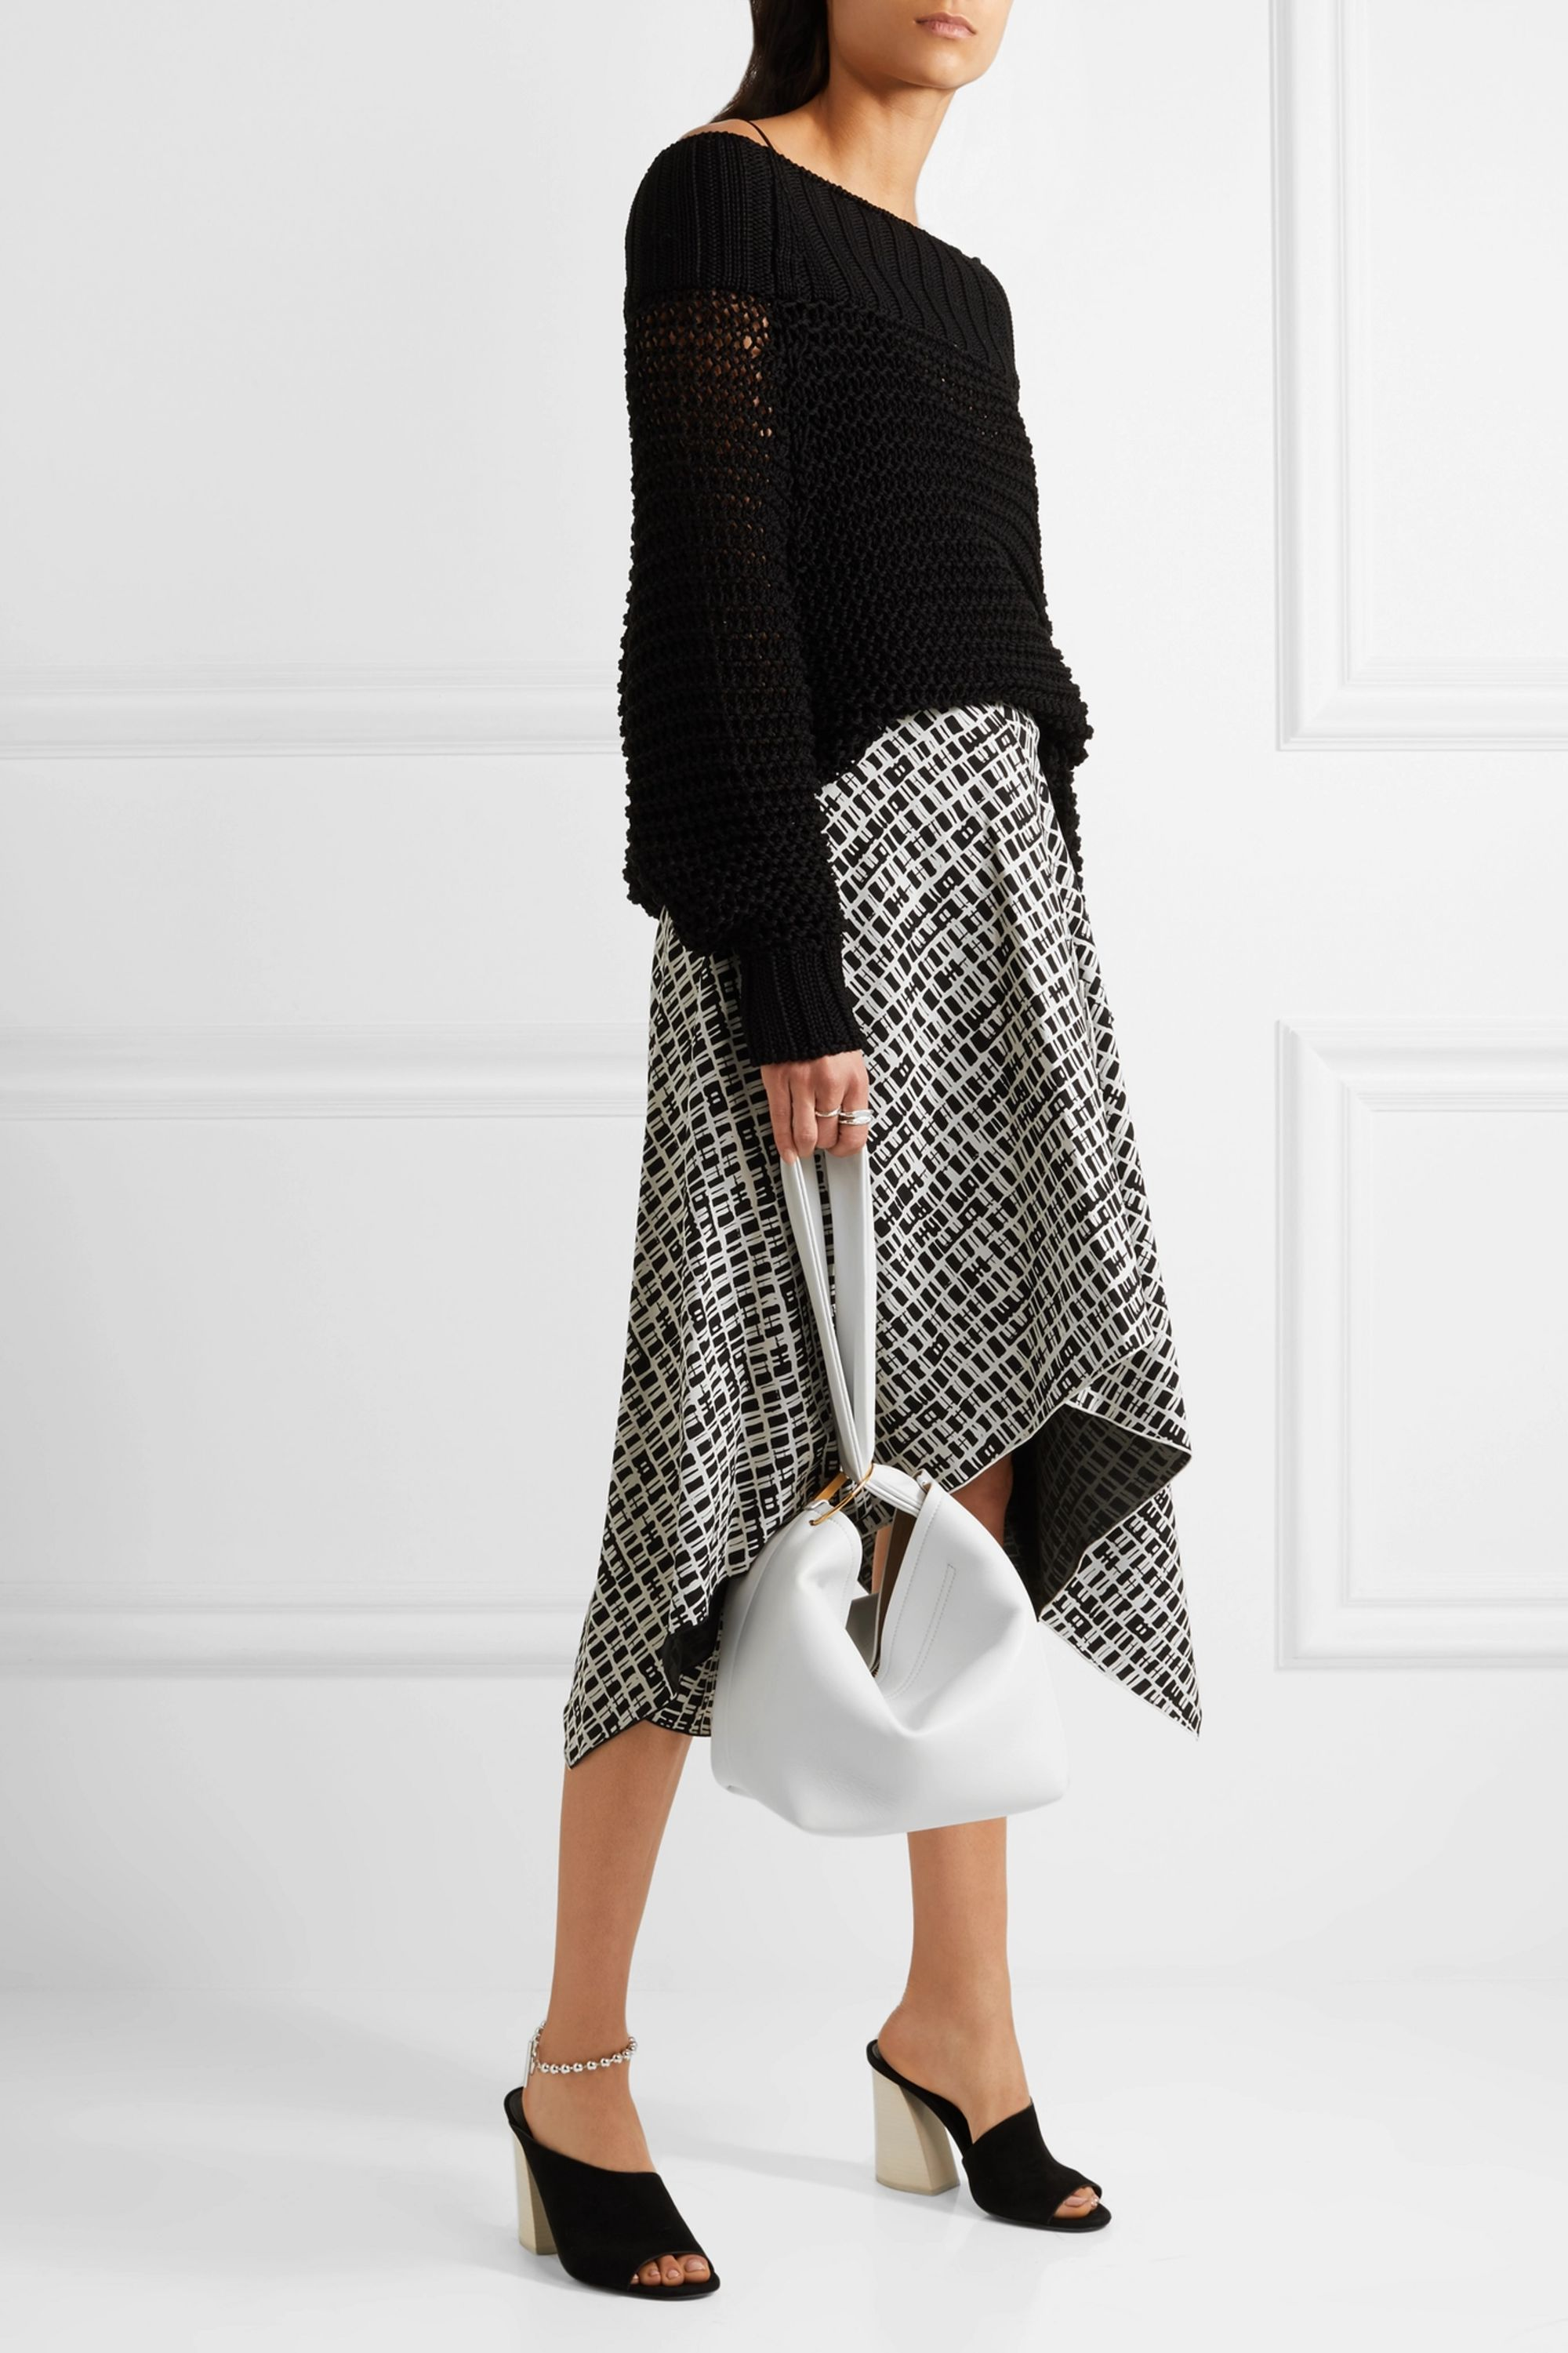 Victoria Beckham Tissue leather clutch